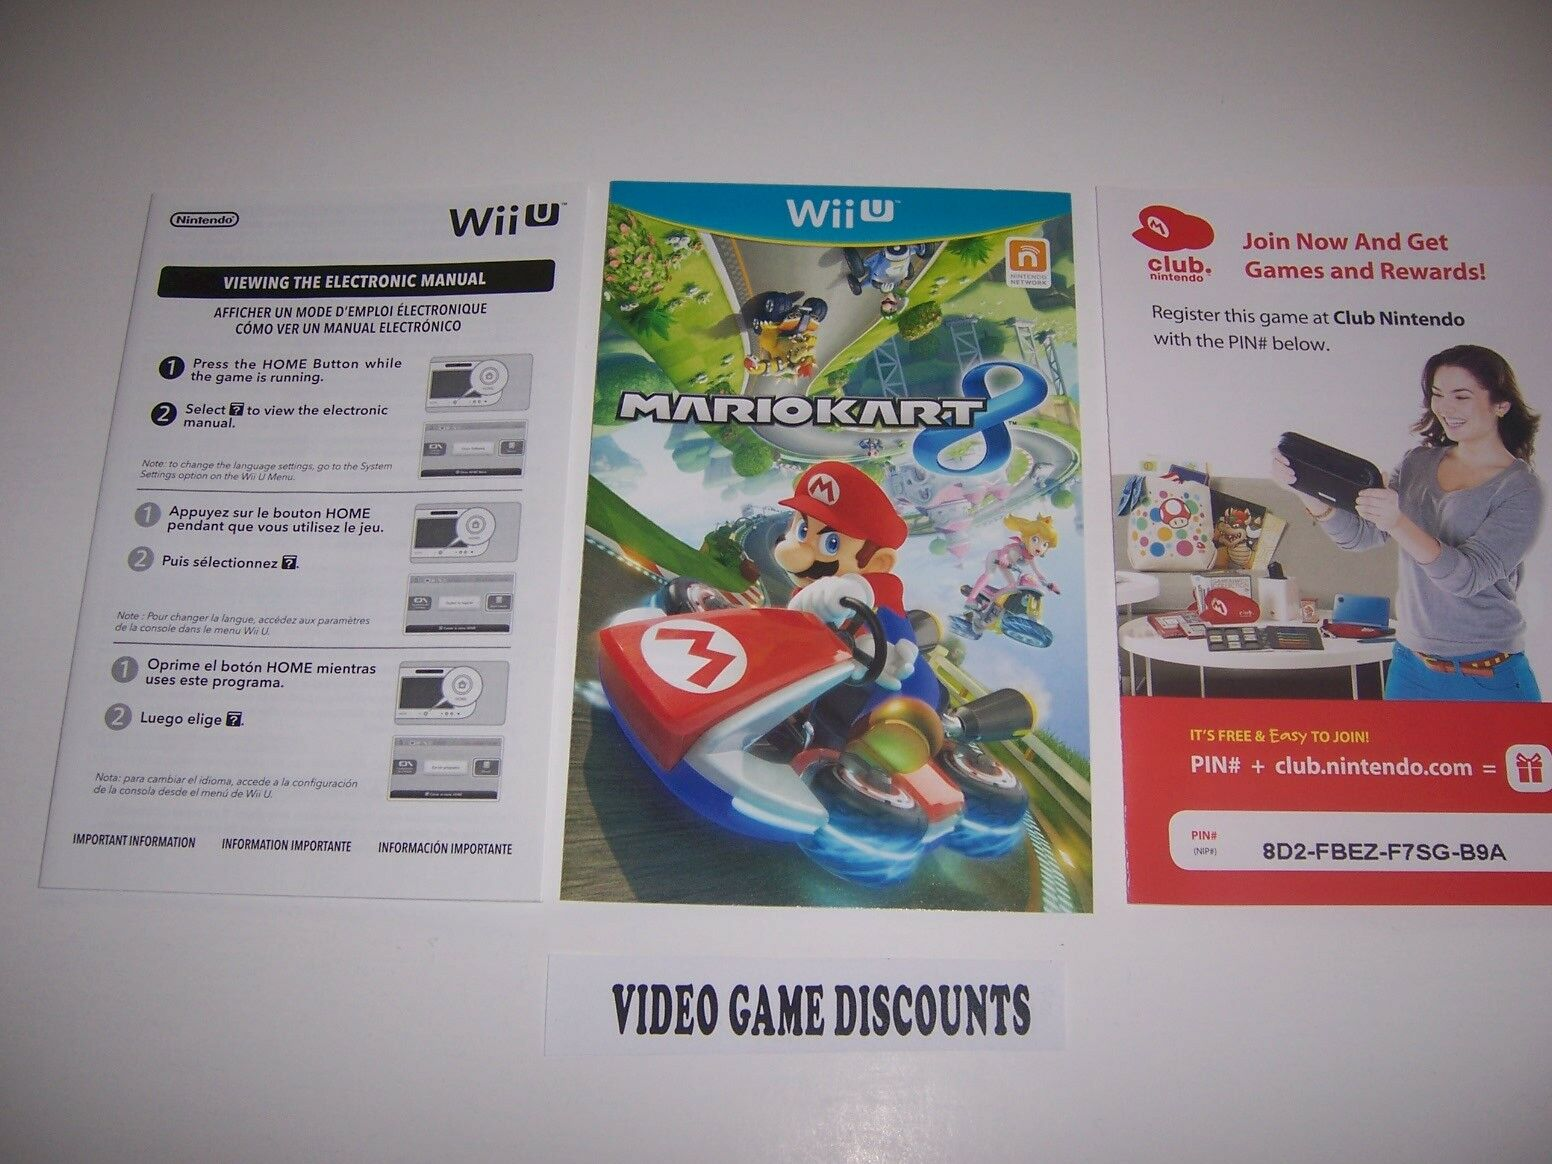 Mario Kart 8 for Wiiu Wii U Instructions Manual Booklet - NO GAME INCLUDED  1 of 1Only 1 available See More